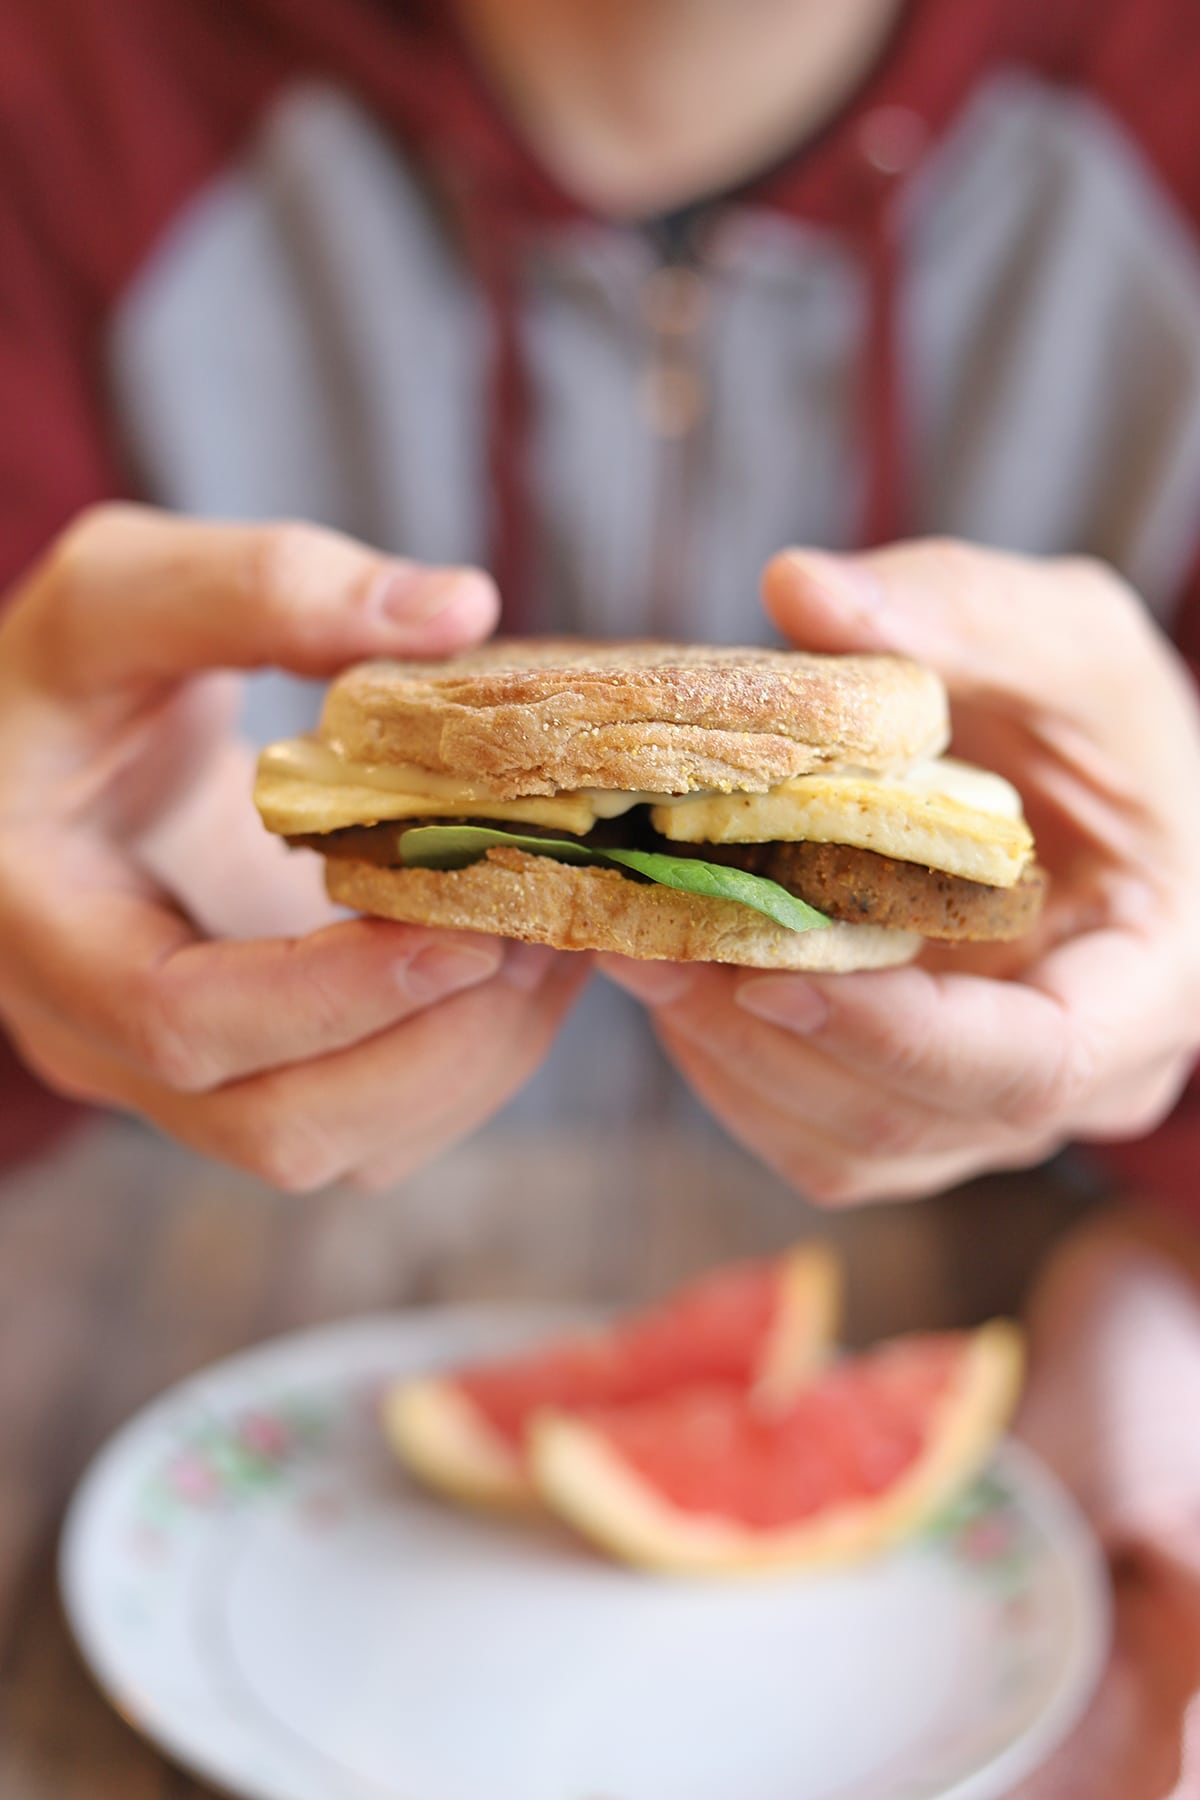 Hands holding English muffin breakfast sandwich.